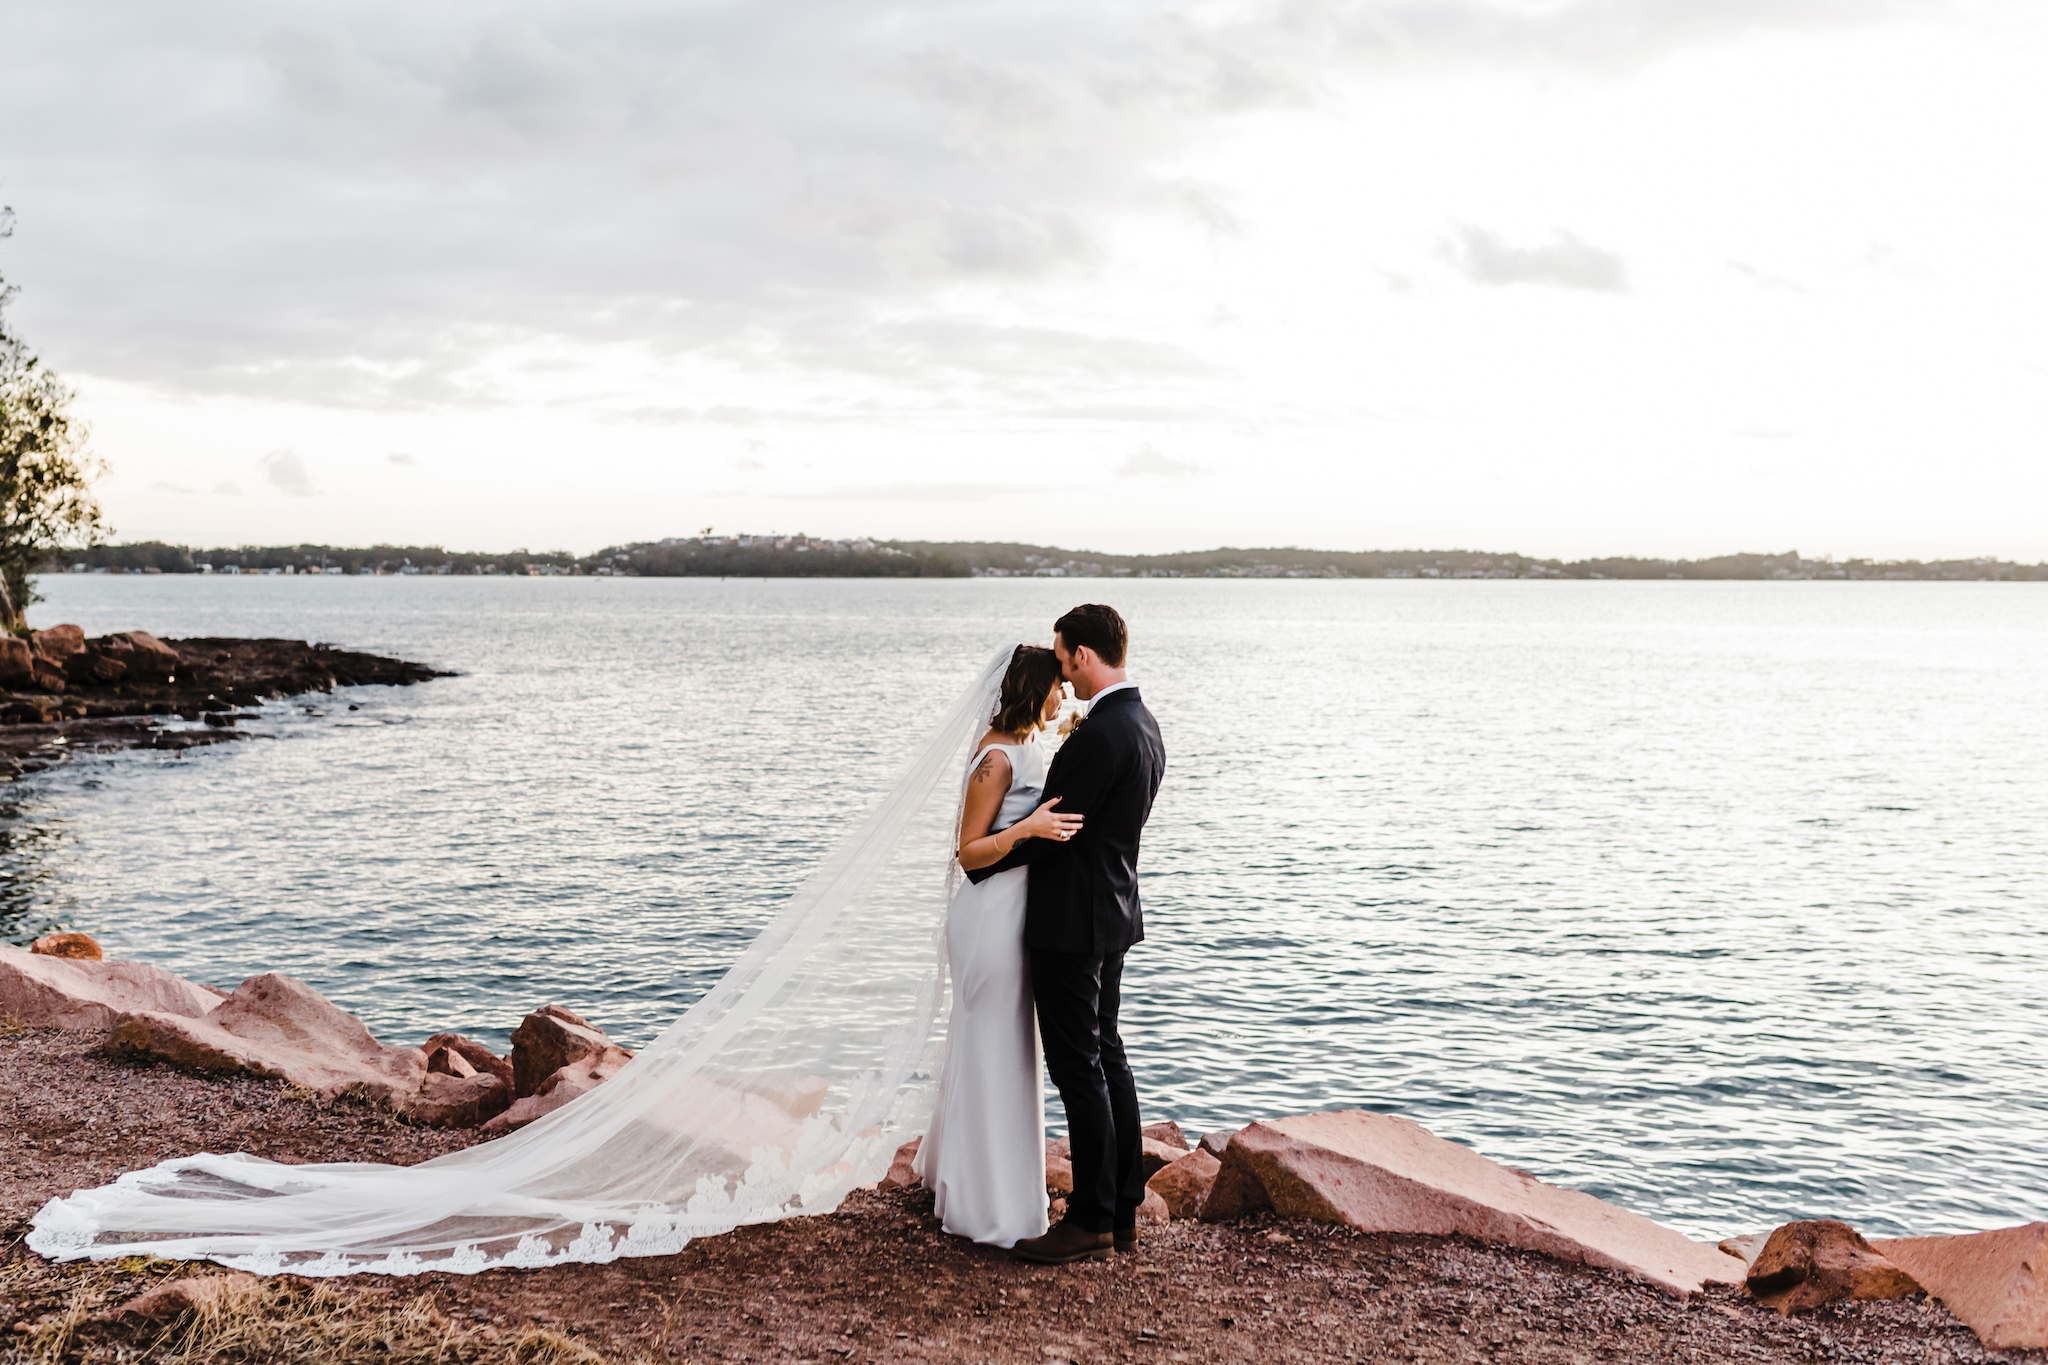 111.anchorageportstephens-melissa+harry.jpg